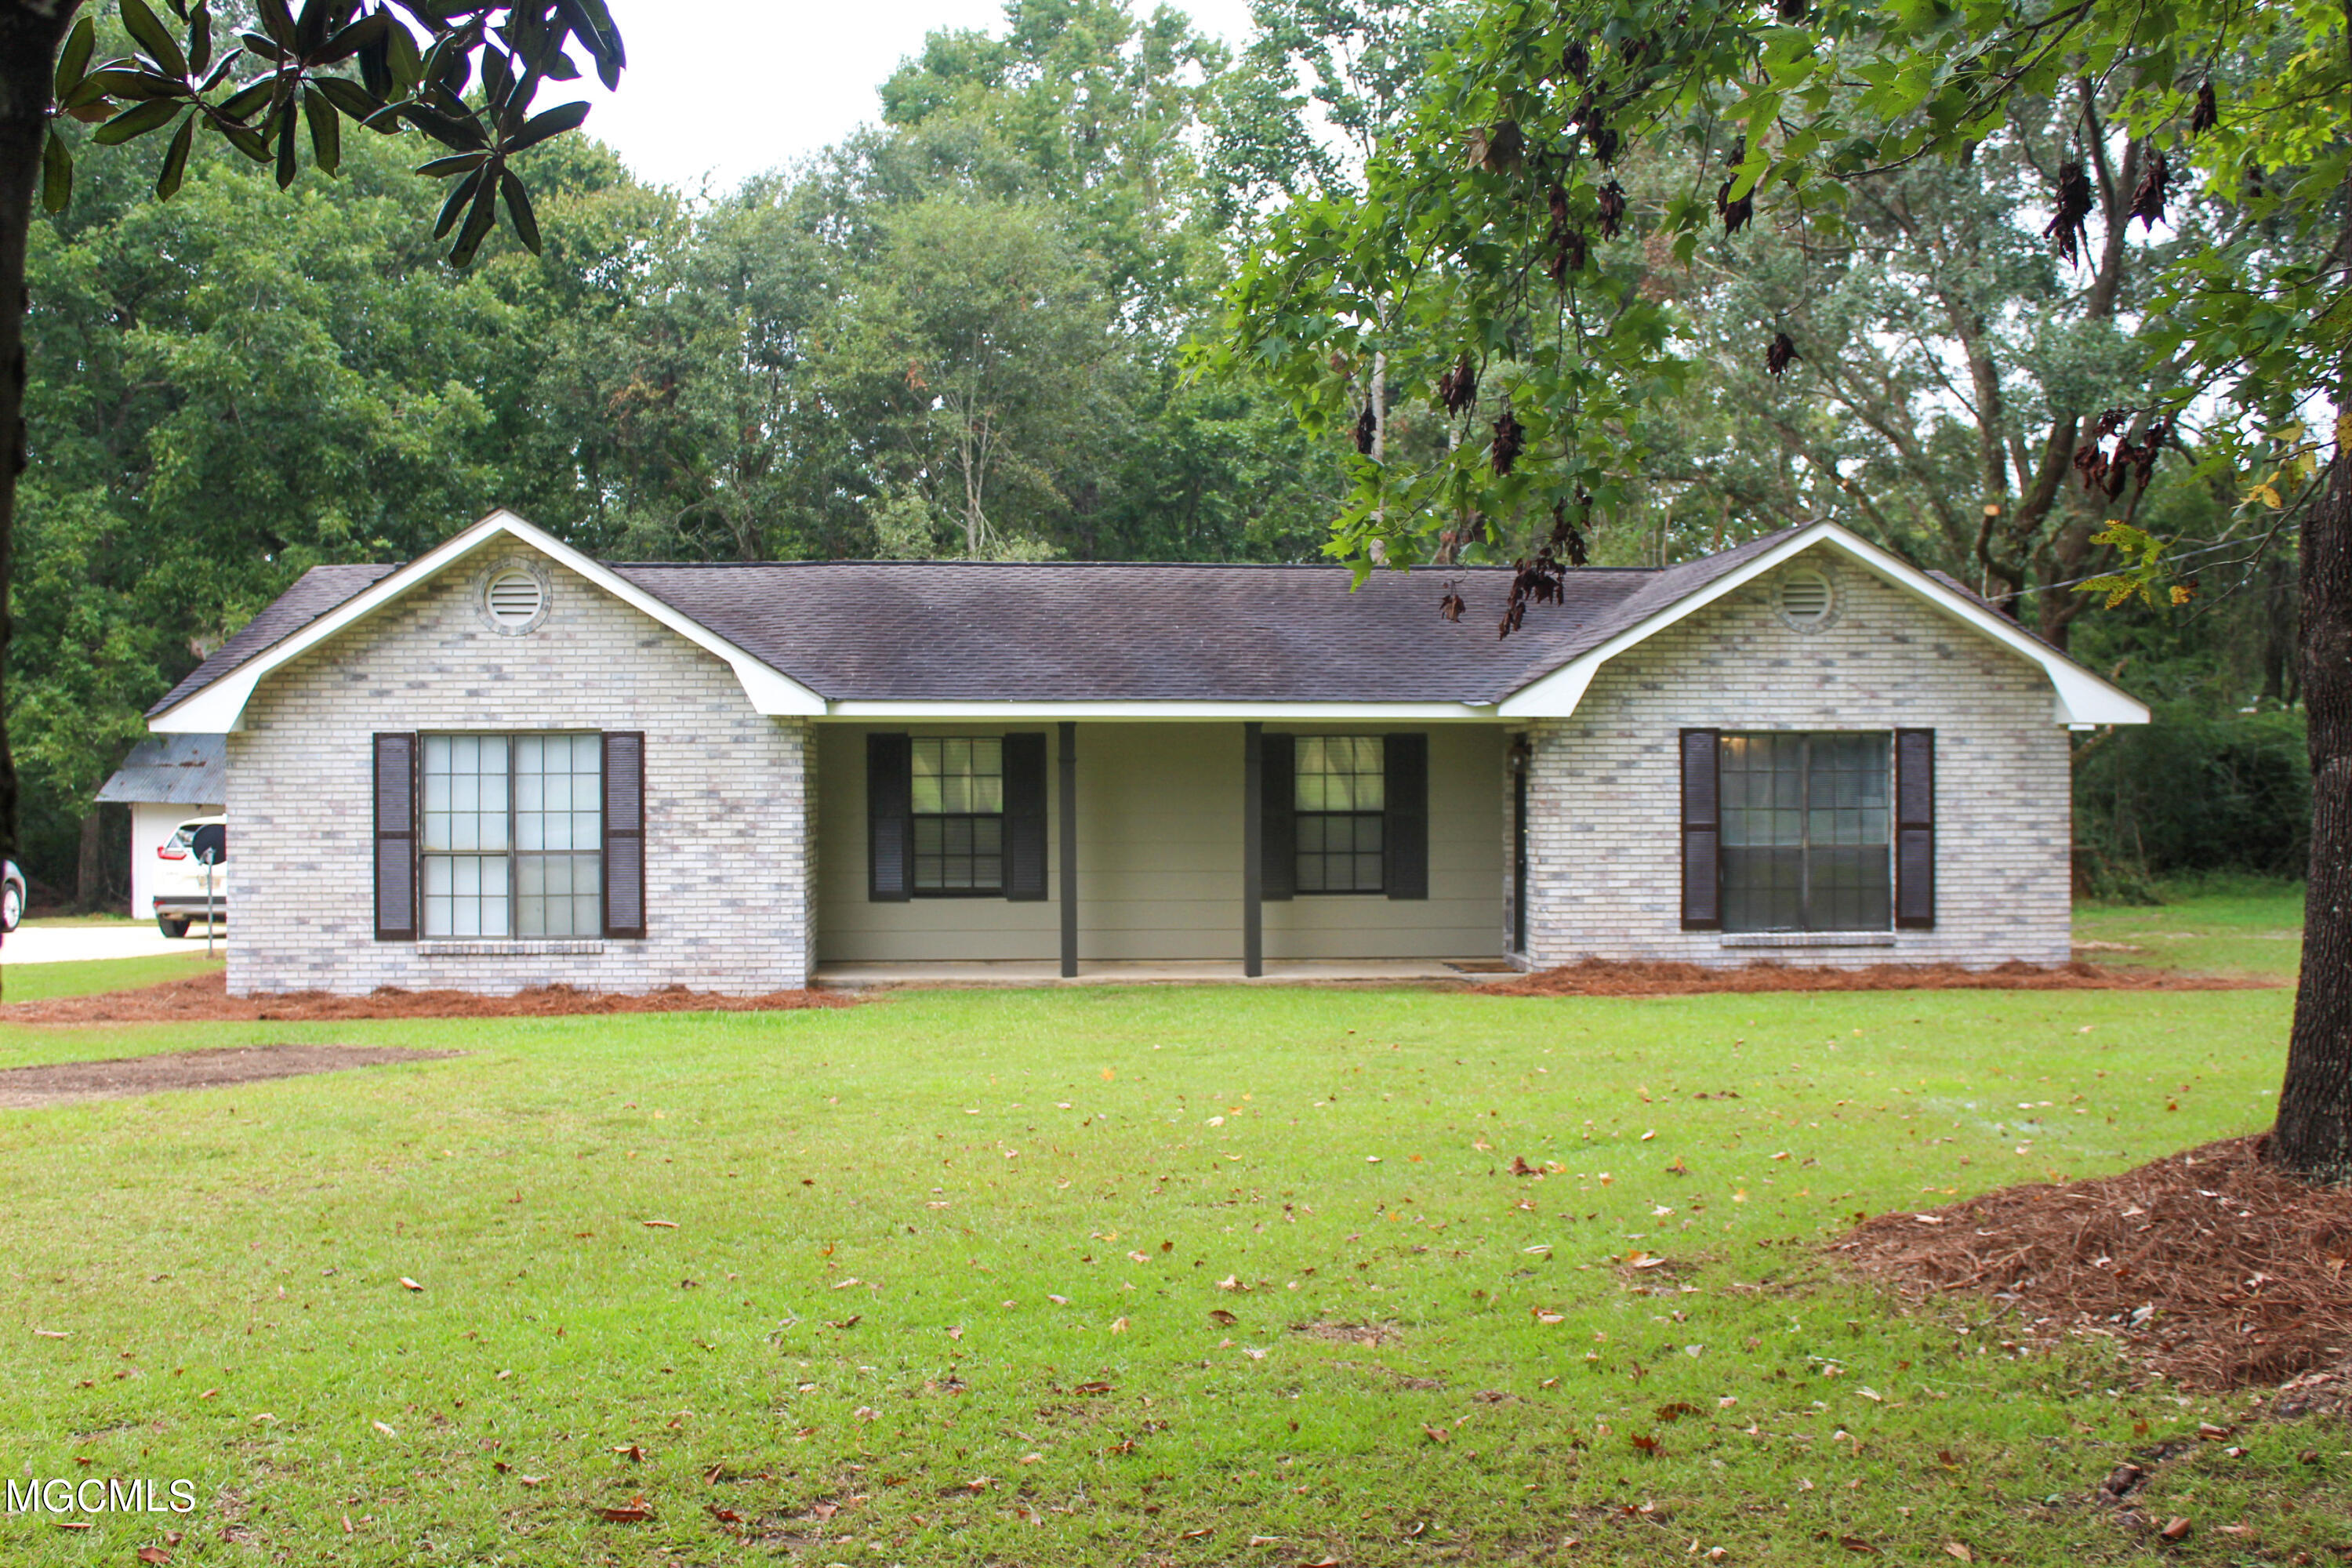 Completely updated 4 bedroom 2 bath home with small office on 2.4 acres. Additional large room that could be used for family room or formal dining area.  Vinyl plank flooring throughout.  Updated kitchen with granite countertops and subway tile backsplash. Brand new a/c